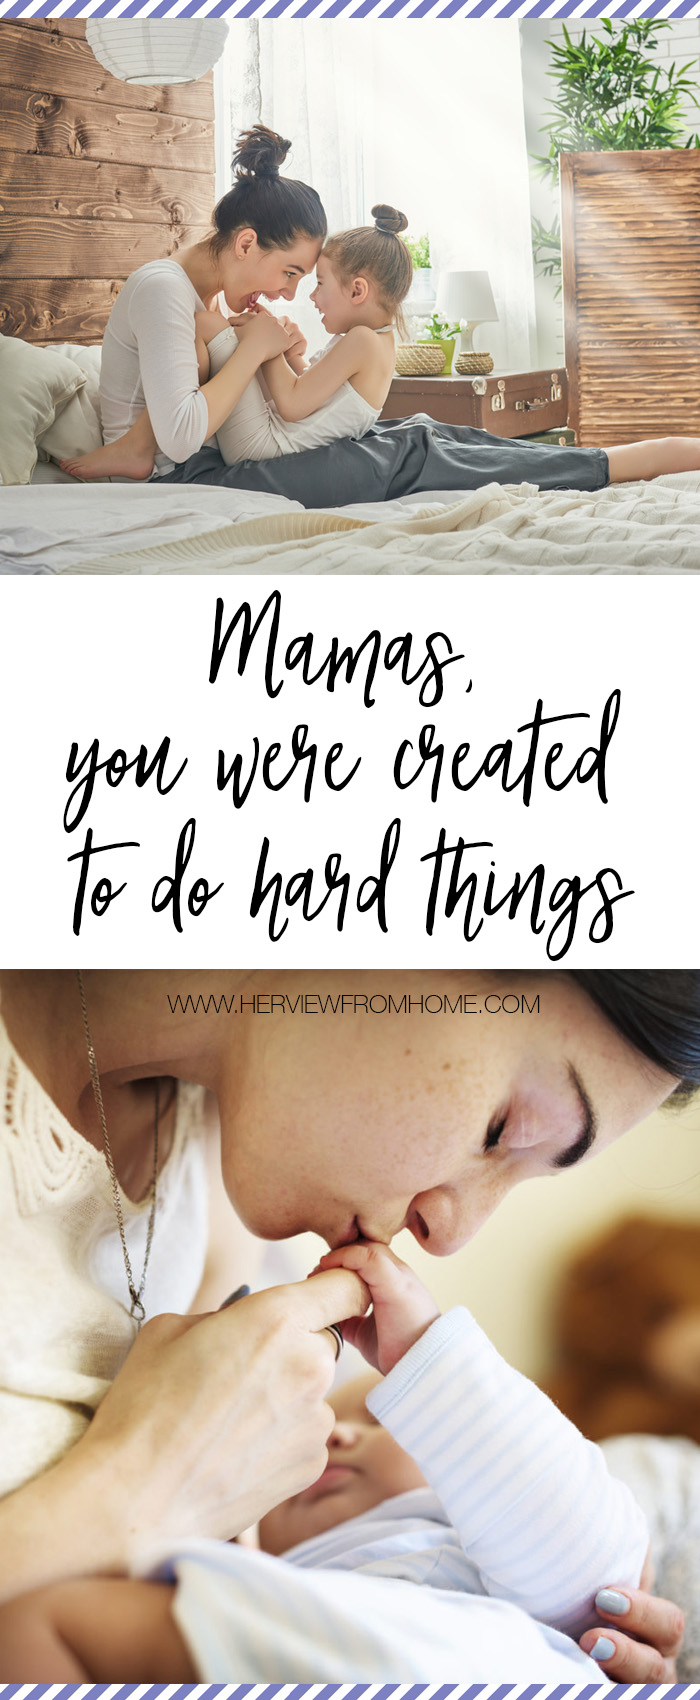 Even in our long days and even longer nights, in the sandwich making and tiny finger nail clipping, and yes even in the tantrums and crying and bottle washing, this is what we were made for.